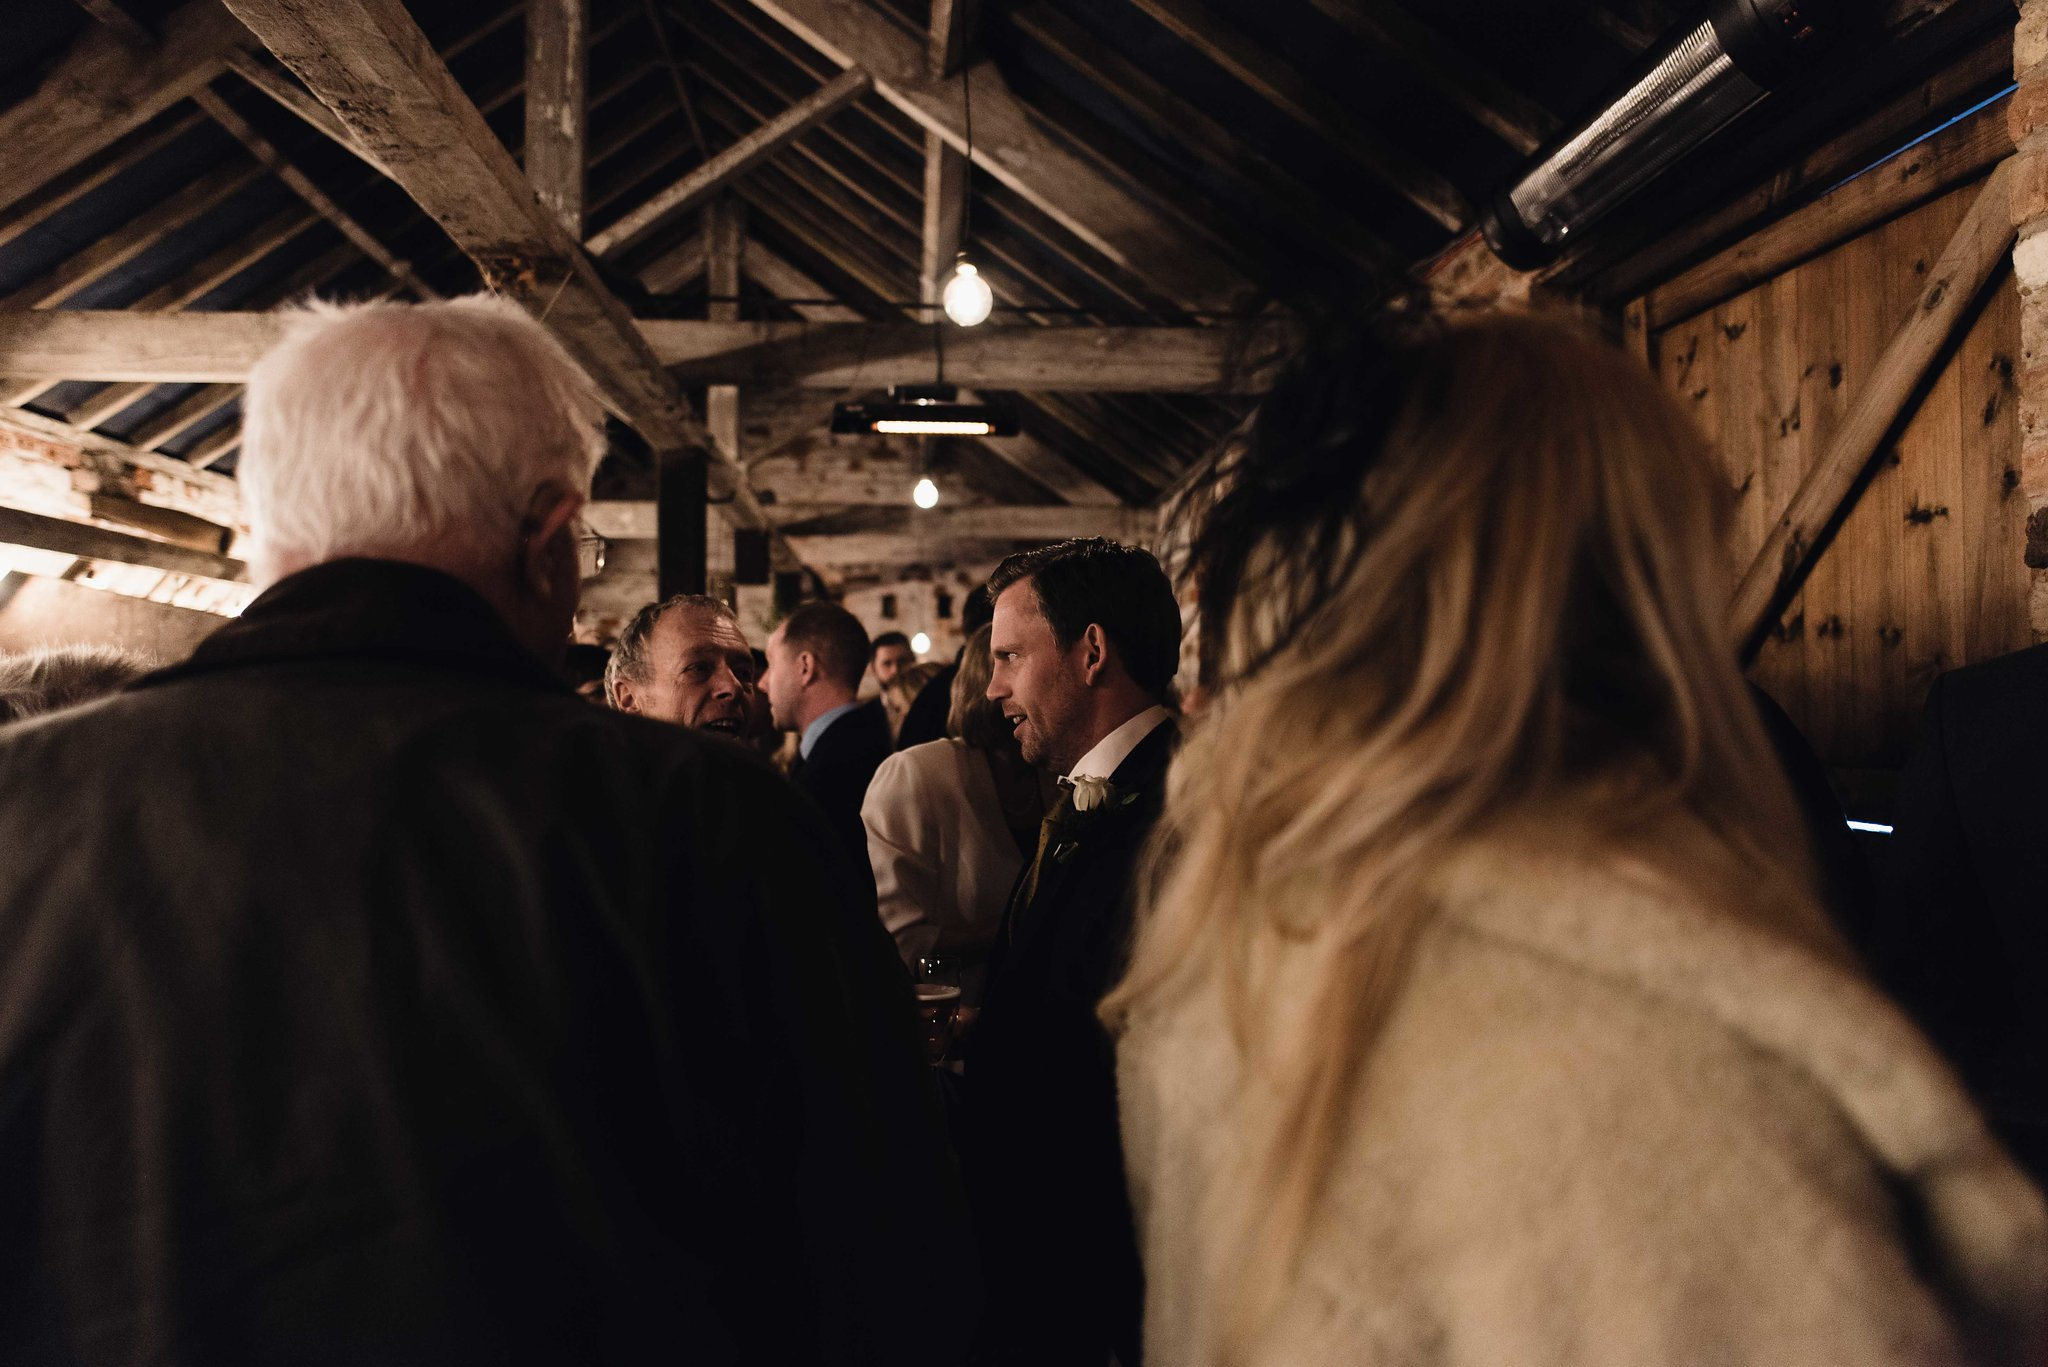 Mingling in The Normans Cow Stalls. Photo by www.alexandraholtphotography.com